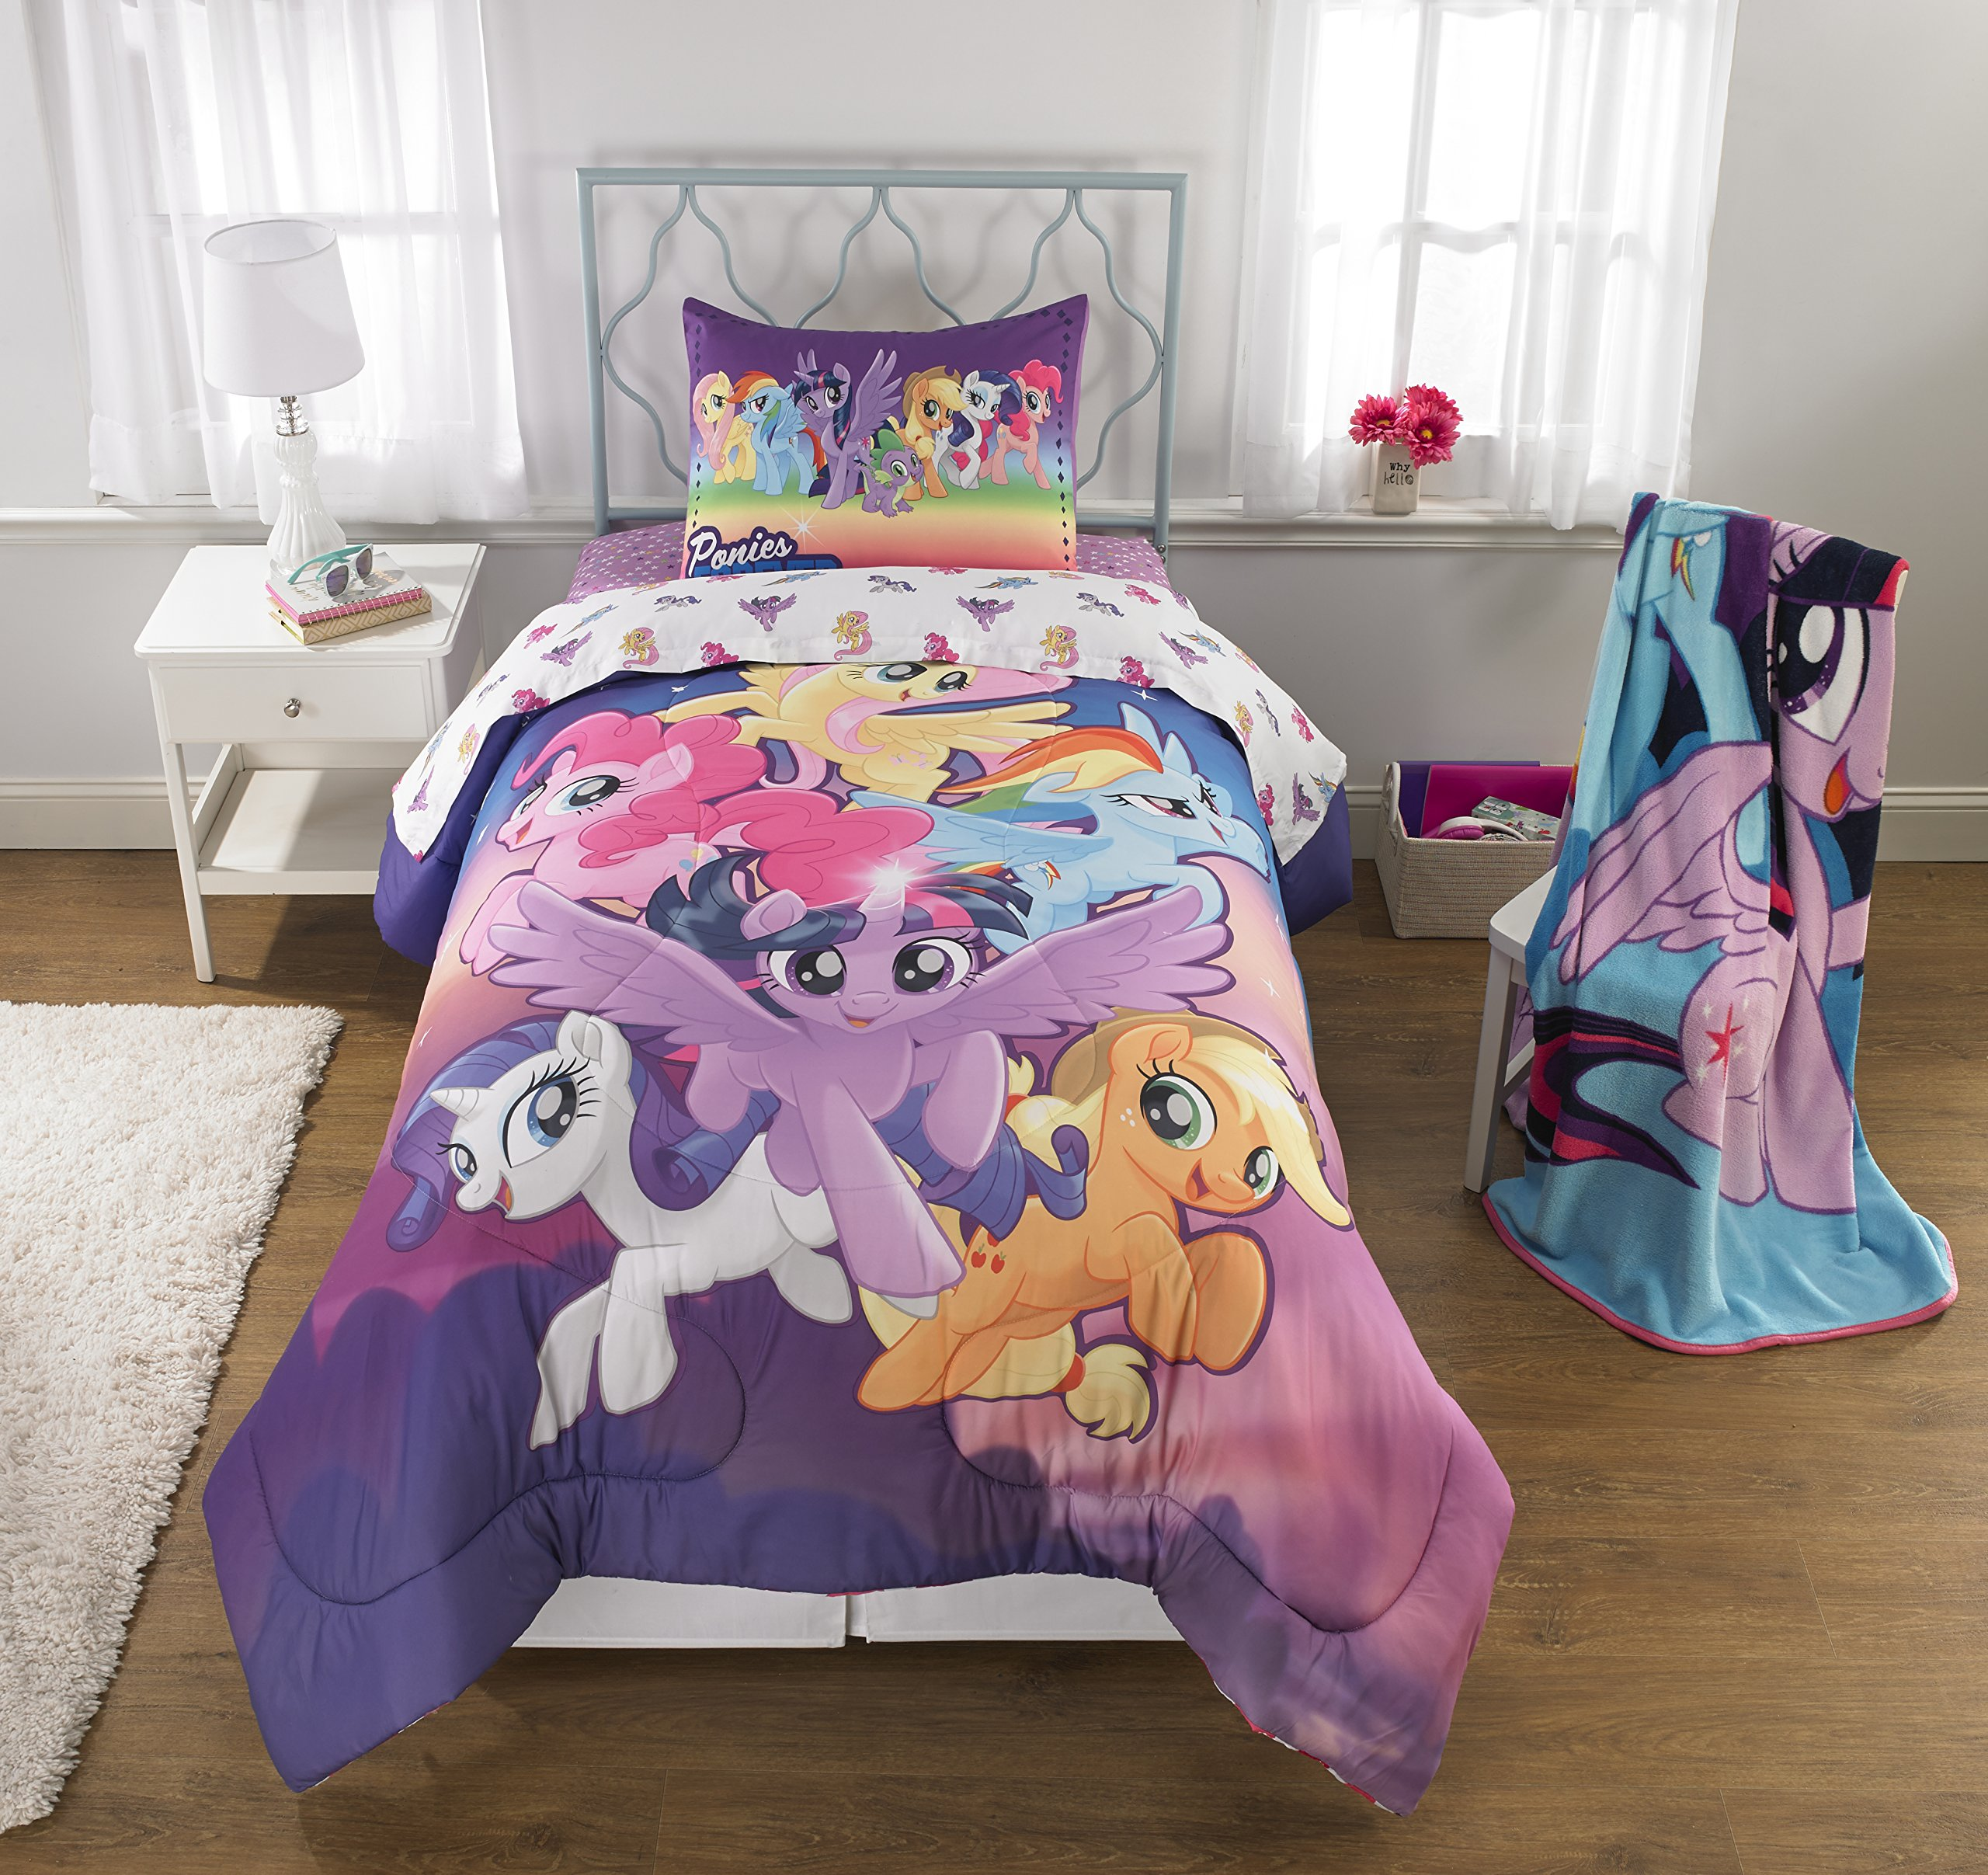 My Little Pony Movie (2017) 7pc Full Comforter and Sheet Set Bedding Collection